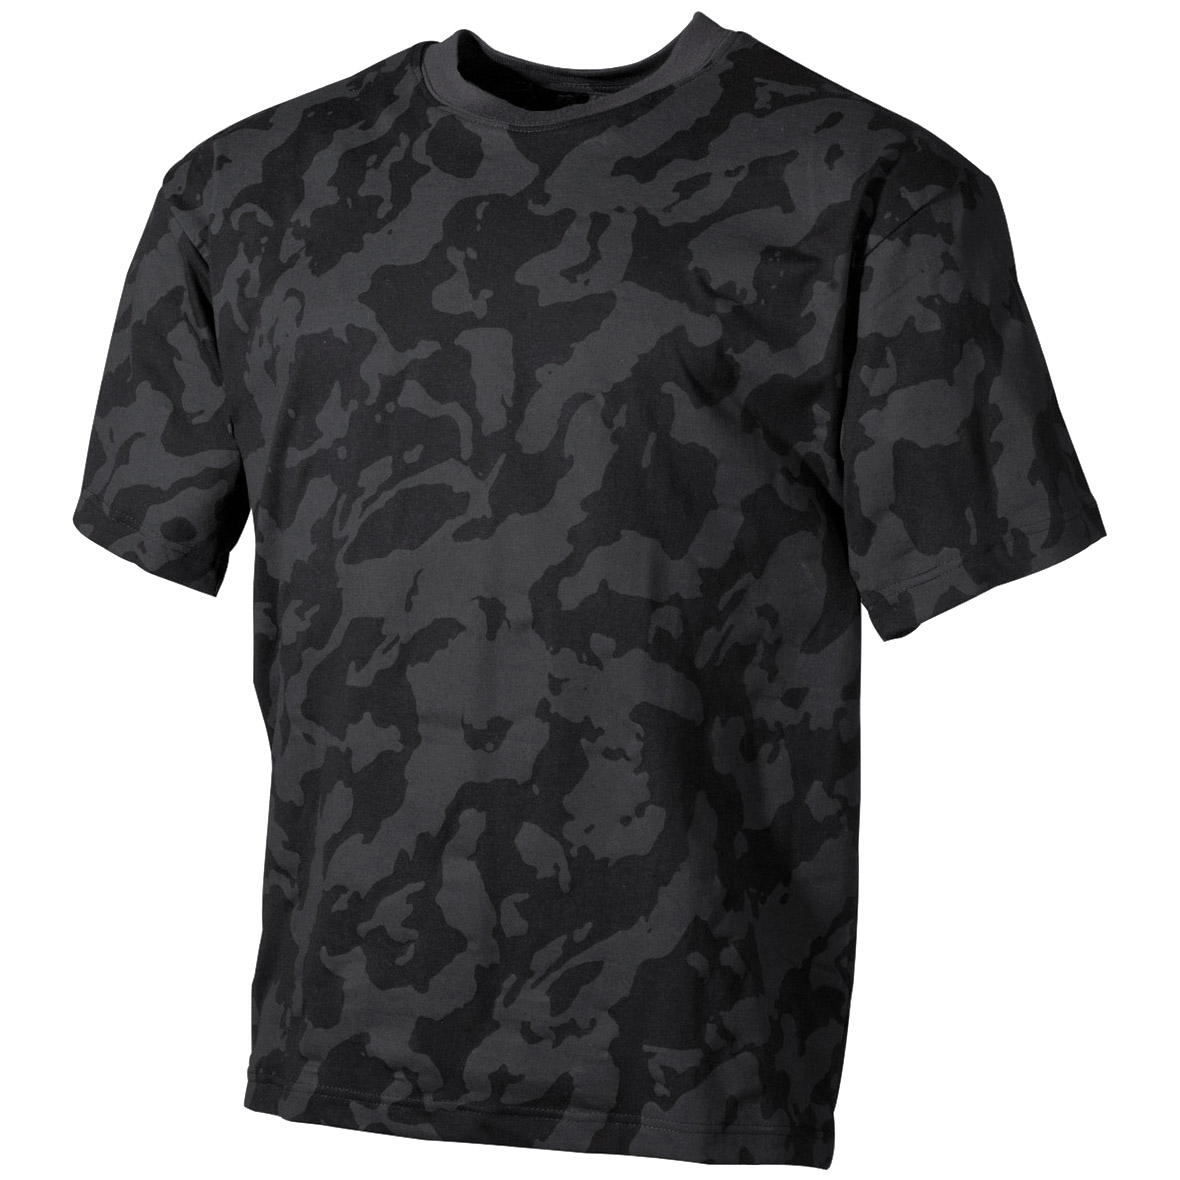 Black camo shirt custom shirt for Camouflage t shirt design